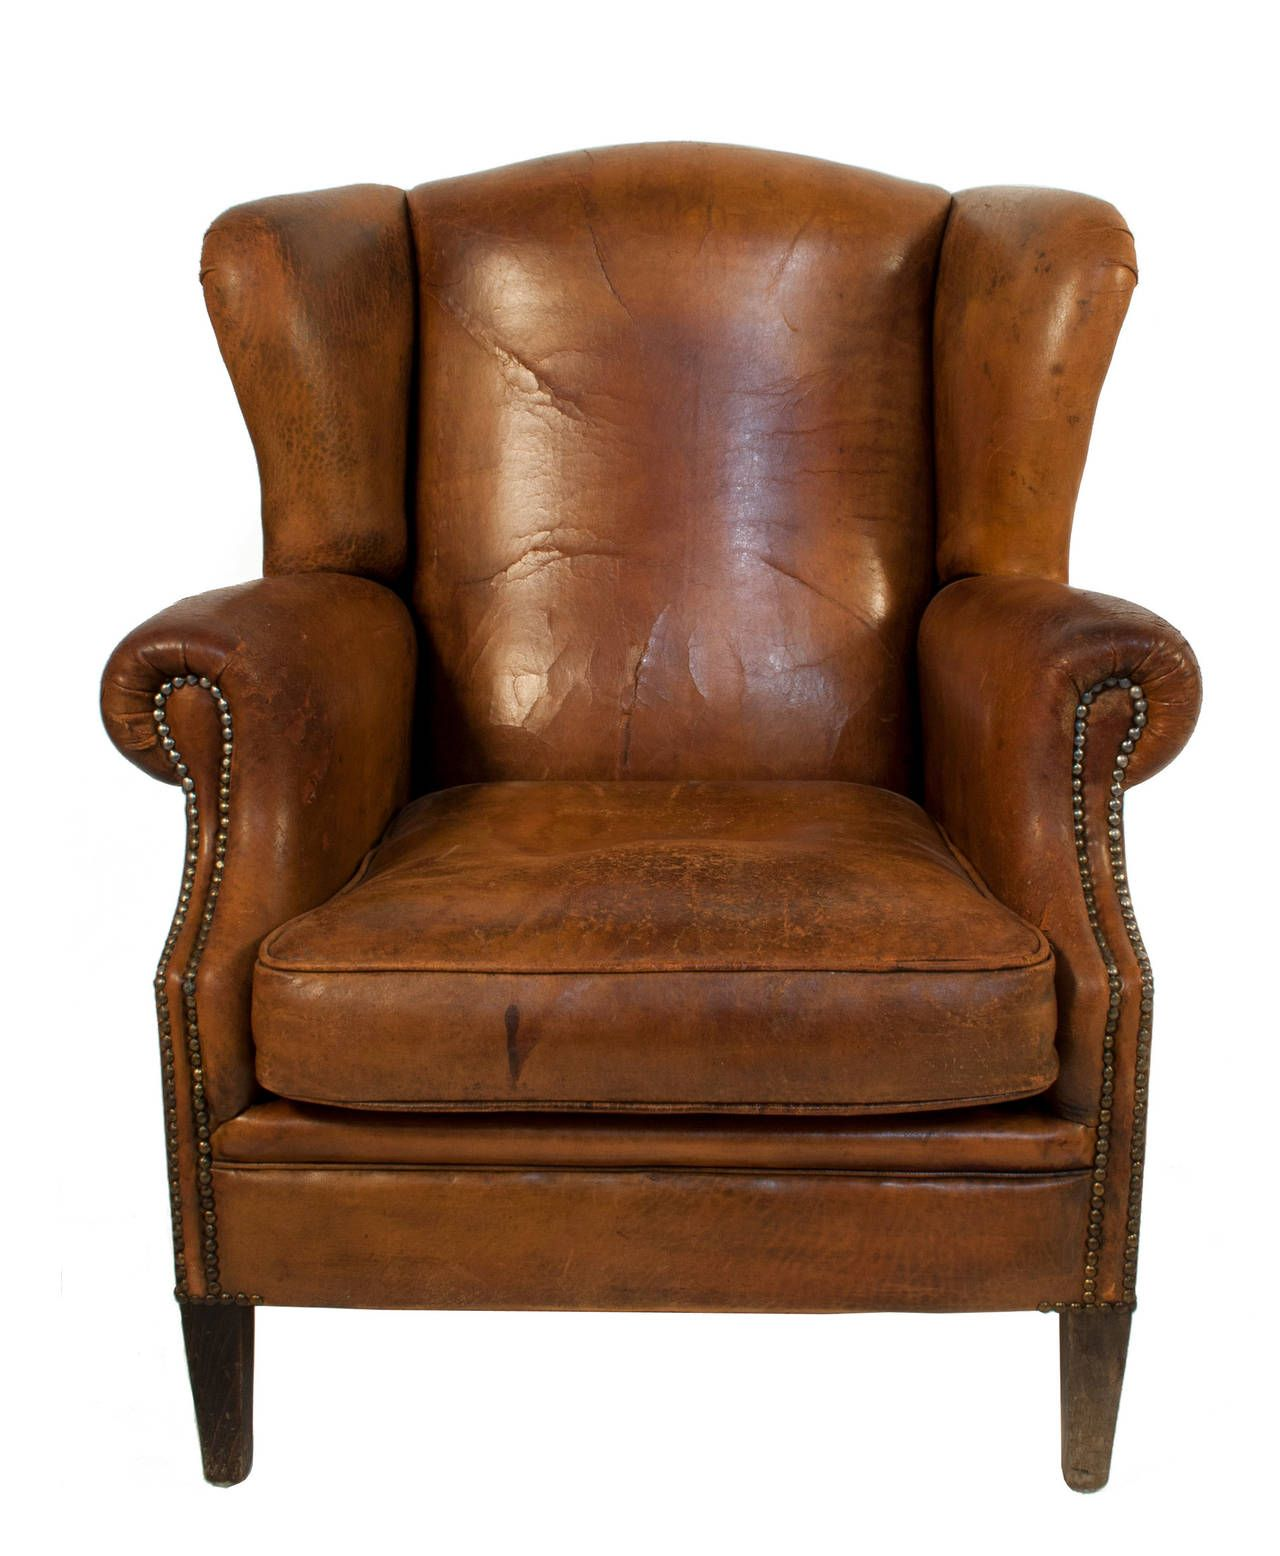 Leather Wingback Chair 1920s Vintage 1920s Home Living Room Furniture Chairs Leather Wingback Chair Leather Wing Chair